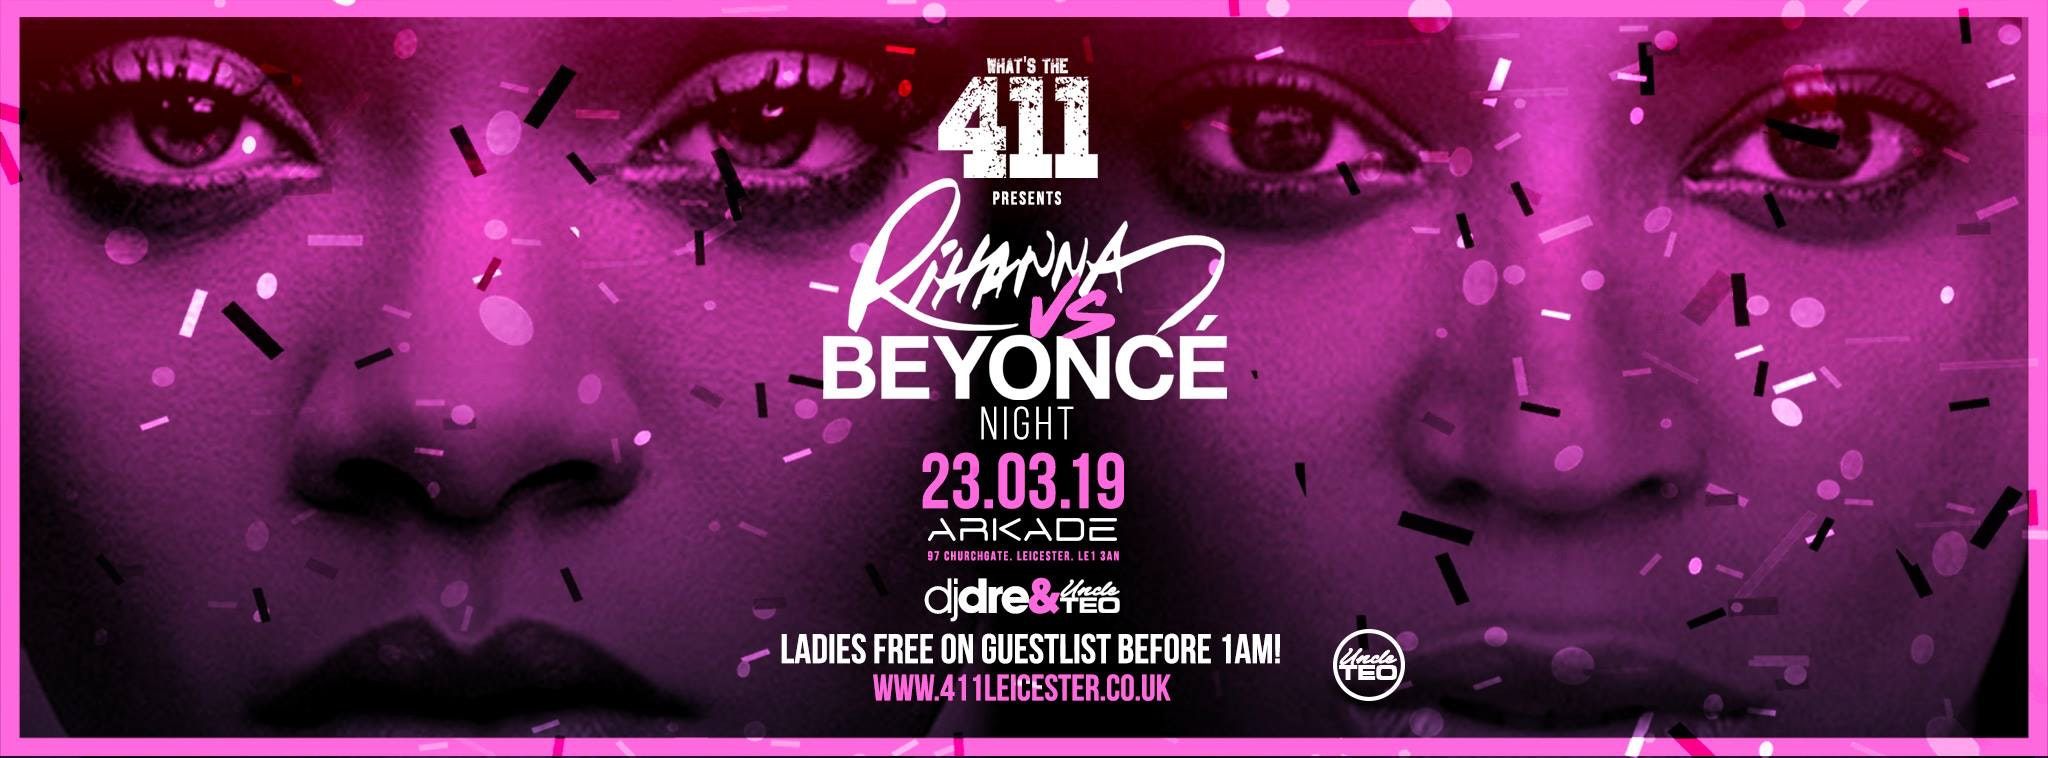 Rihanna Vs Beyonce ★ VIP Bottle + Table Giveaway! ★ Ladies Guestlist Now Full! ★ Tickets Now On Sale!